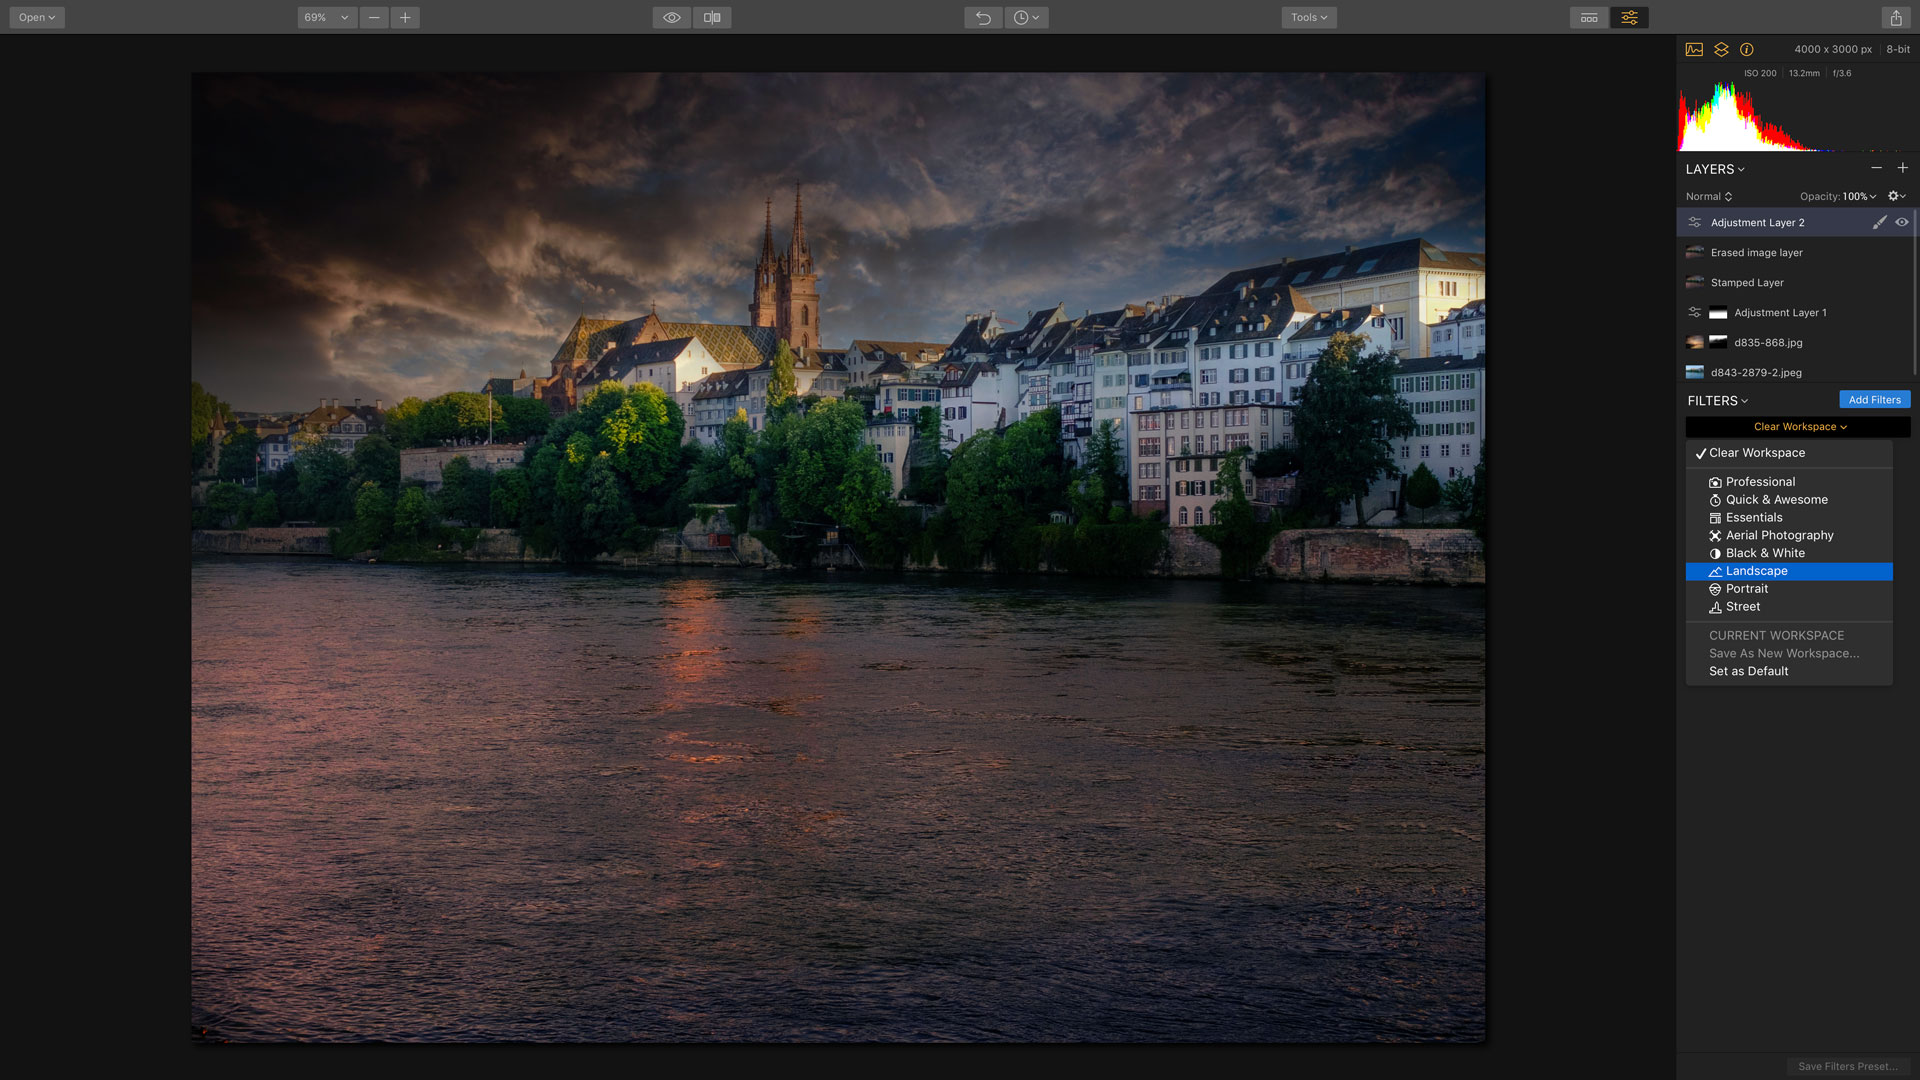 Camera Jabber | How to use Luminar's workspaces, filters and layers